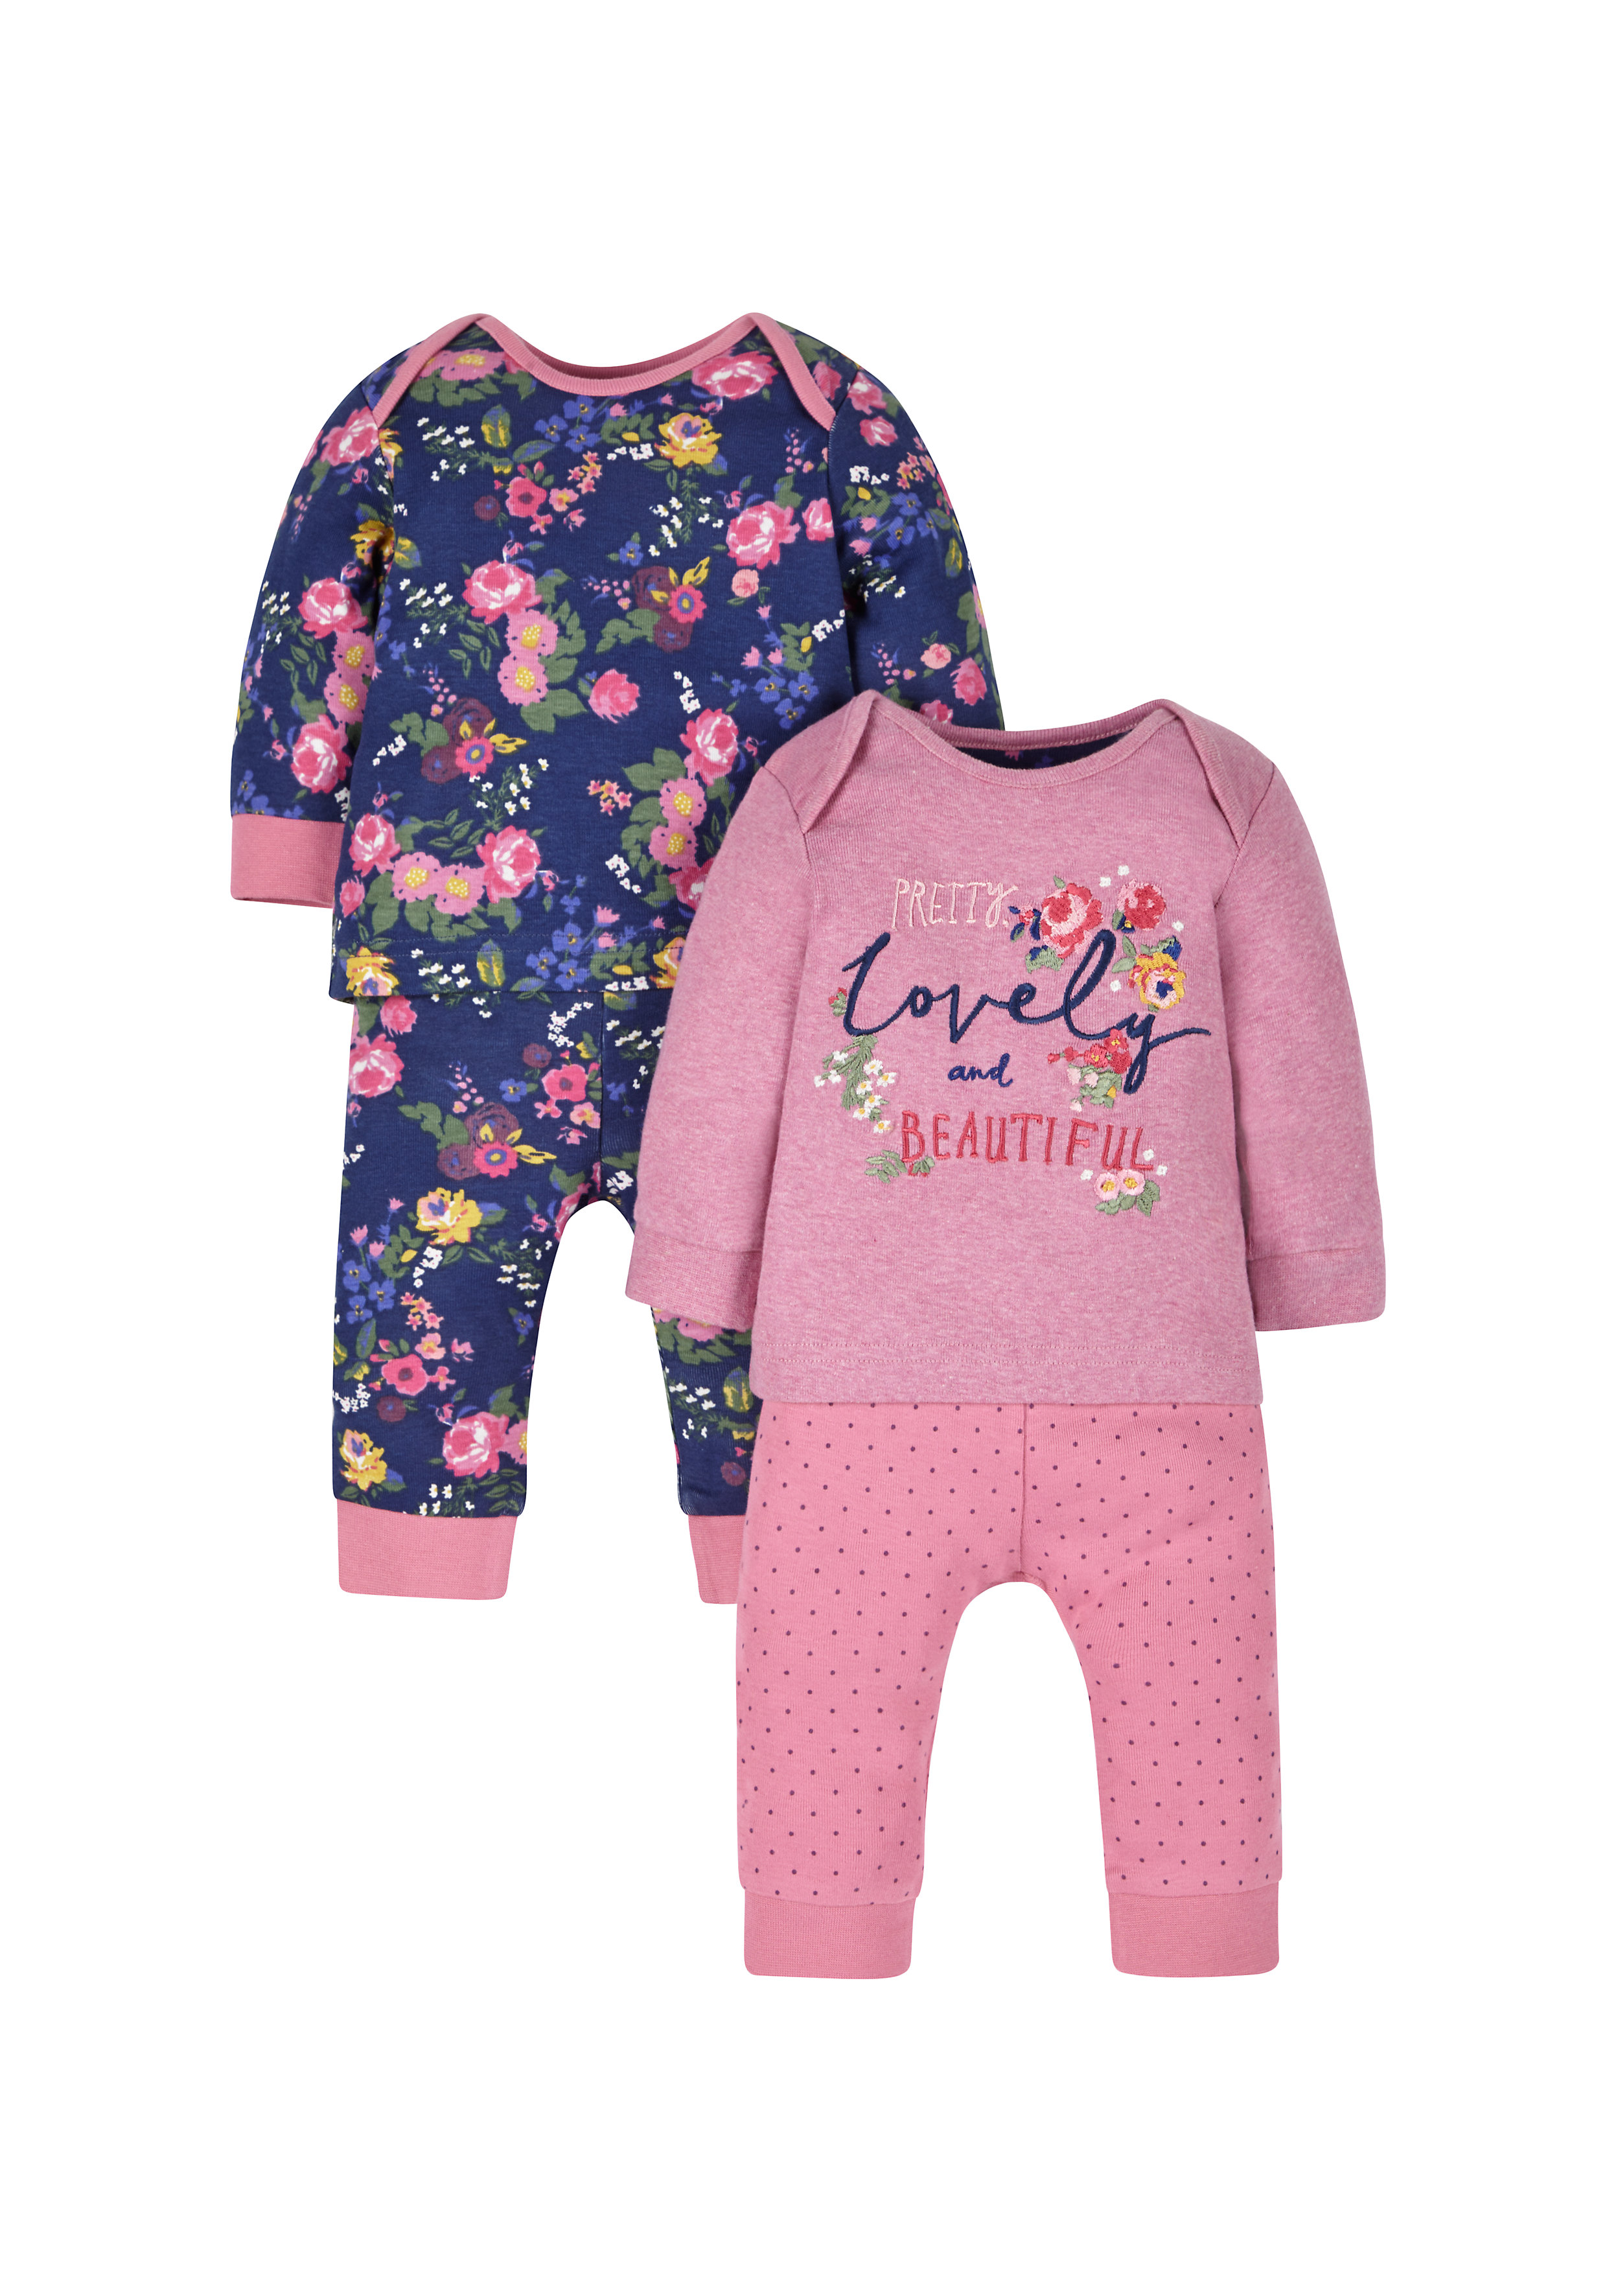 Mothercare | Girls Full Sleeves Pyjama Set Floral Embroidery - Pack Of 2 - Pink